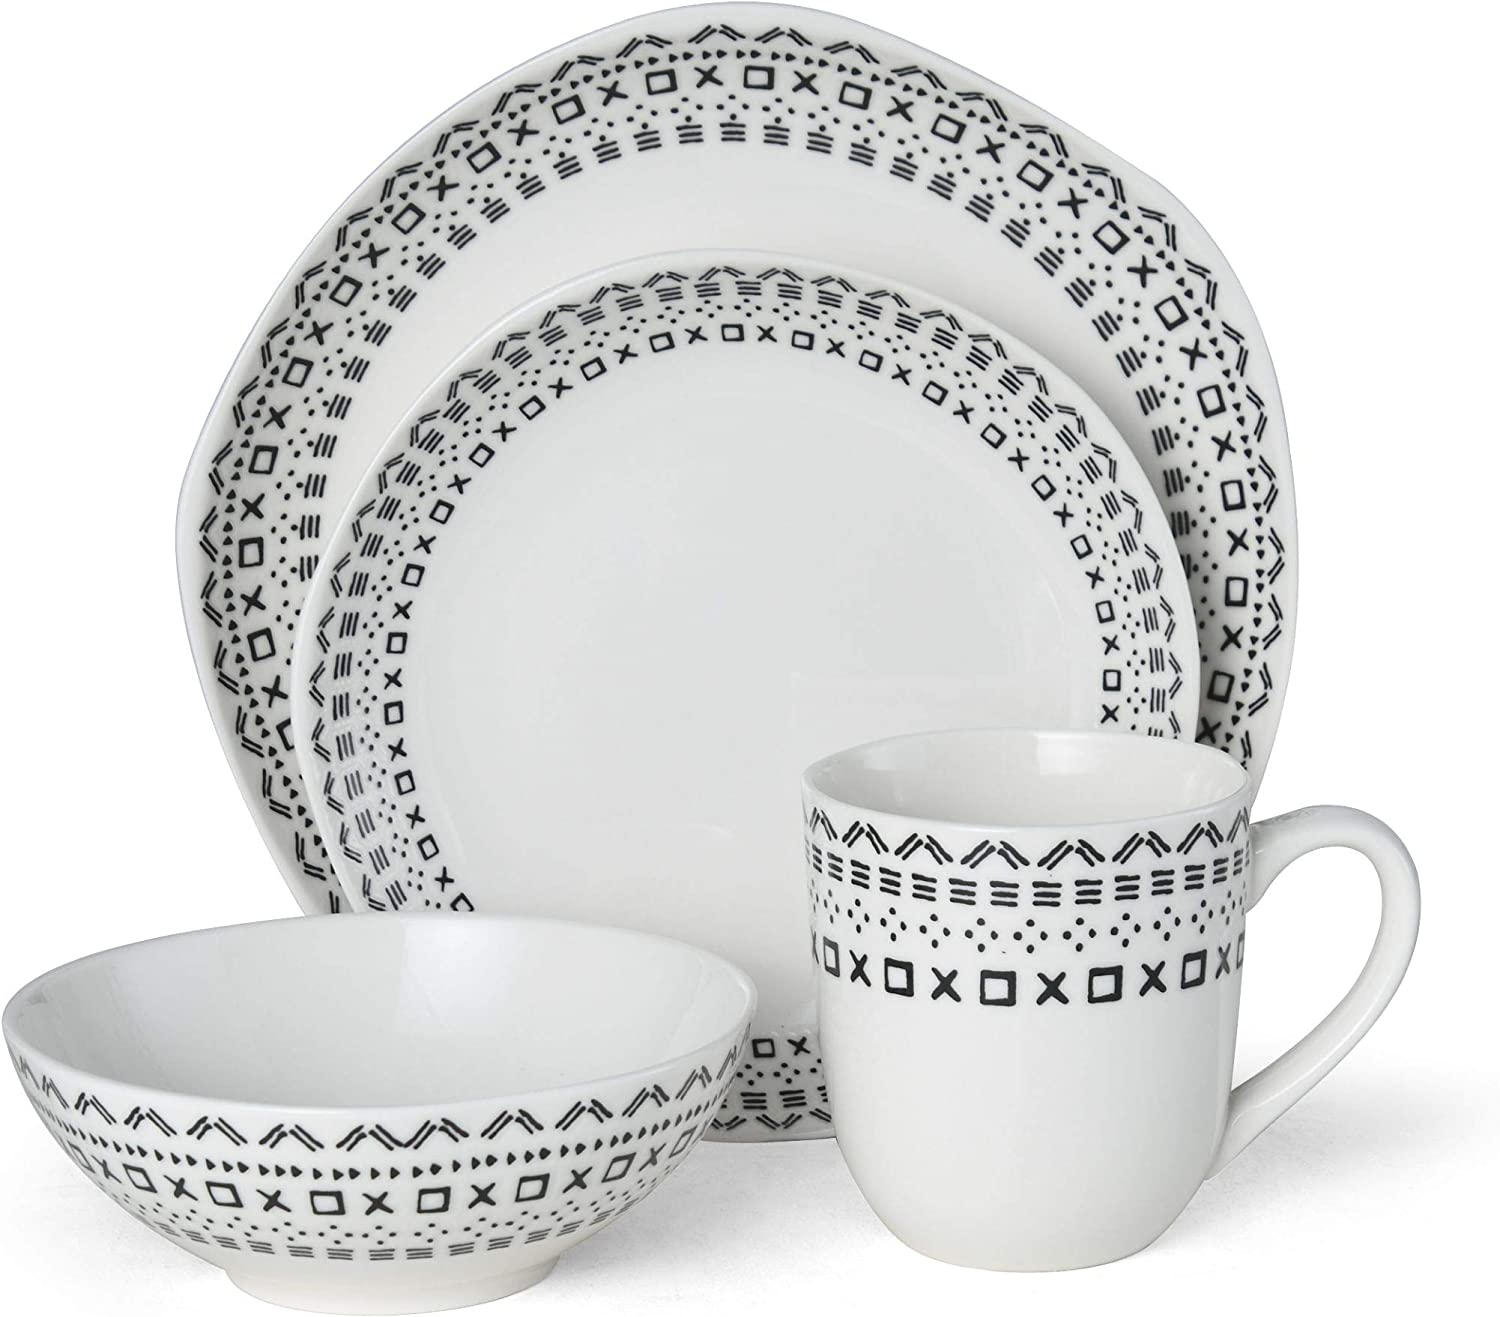 Fitz and Floyd Organic Coupe Maric 16-Piece Dinnerware Set, Assorted